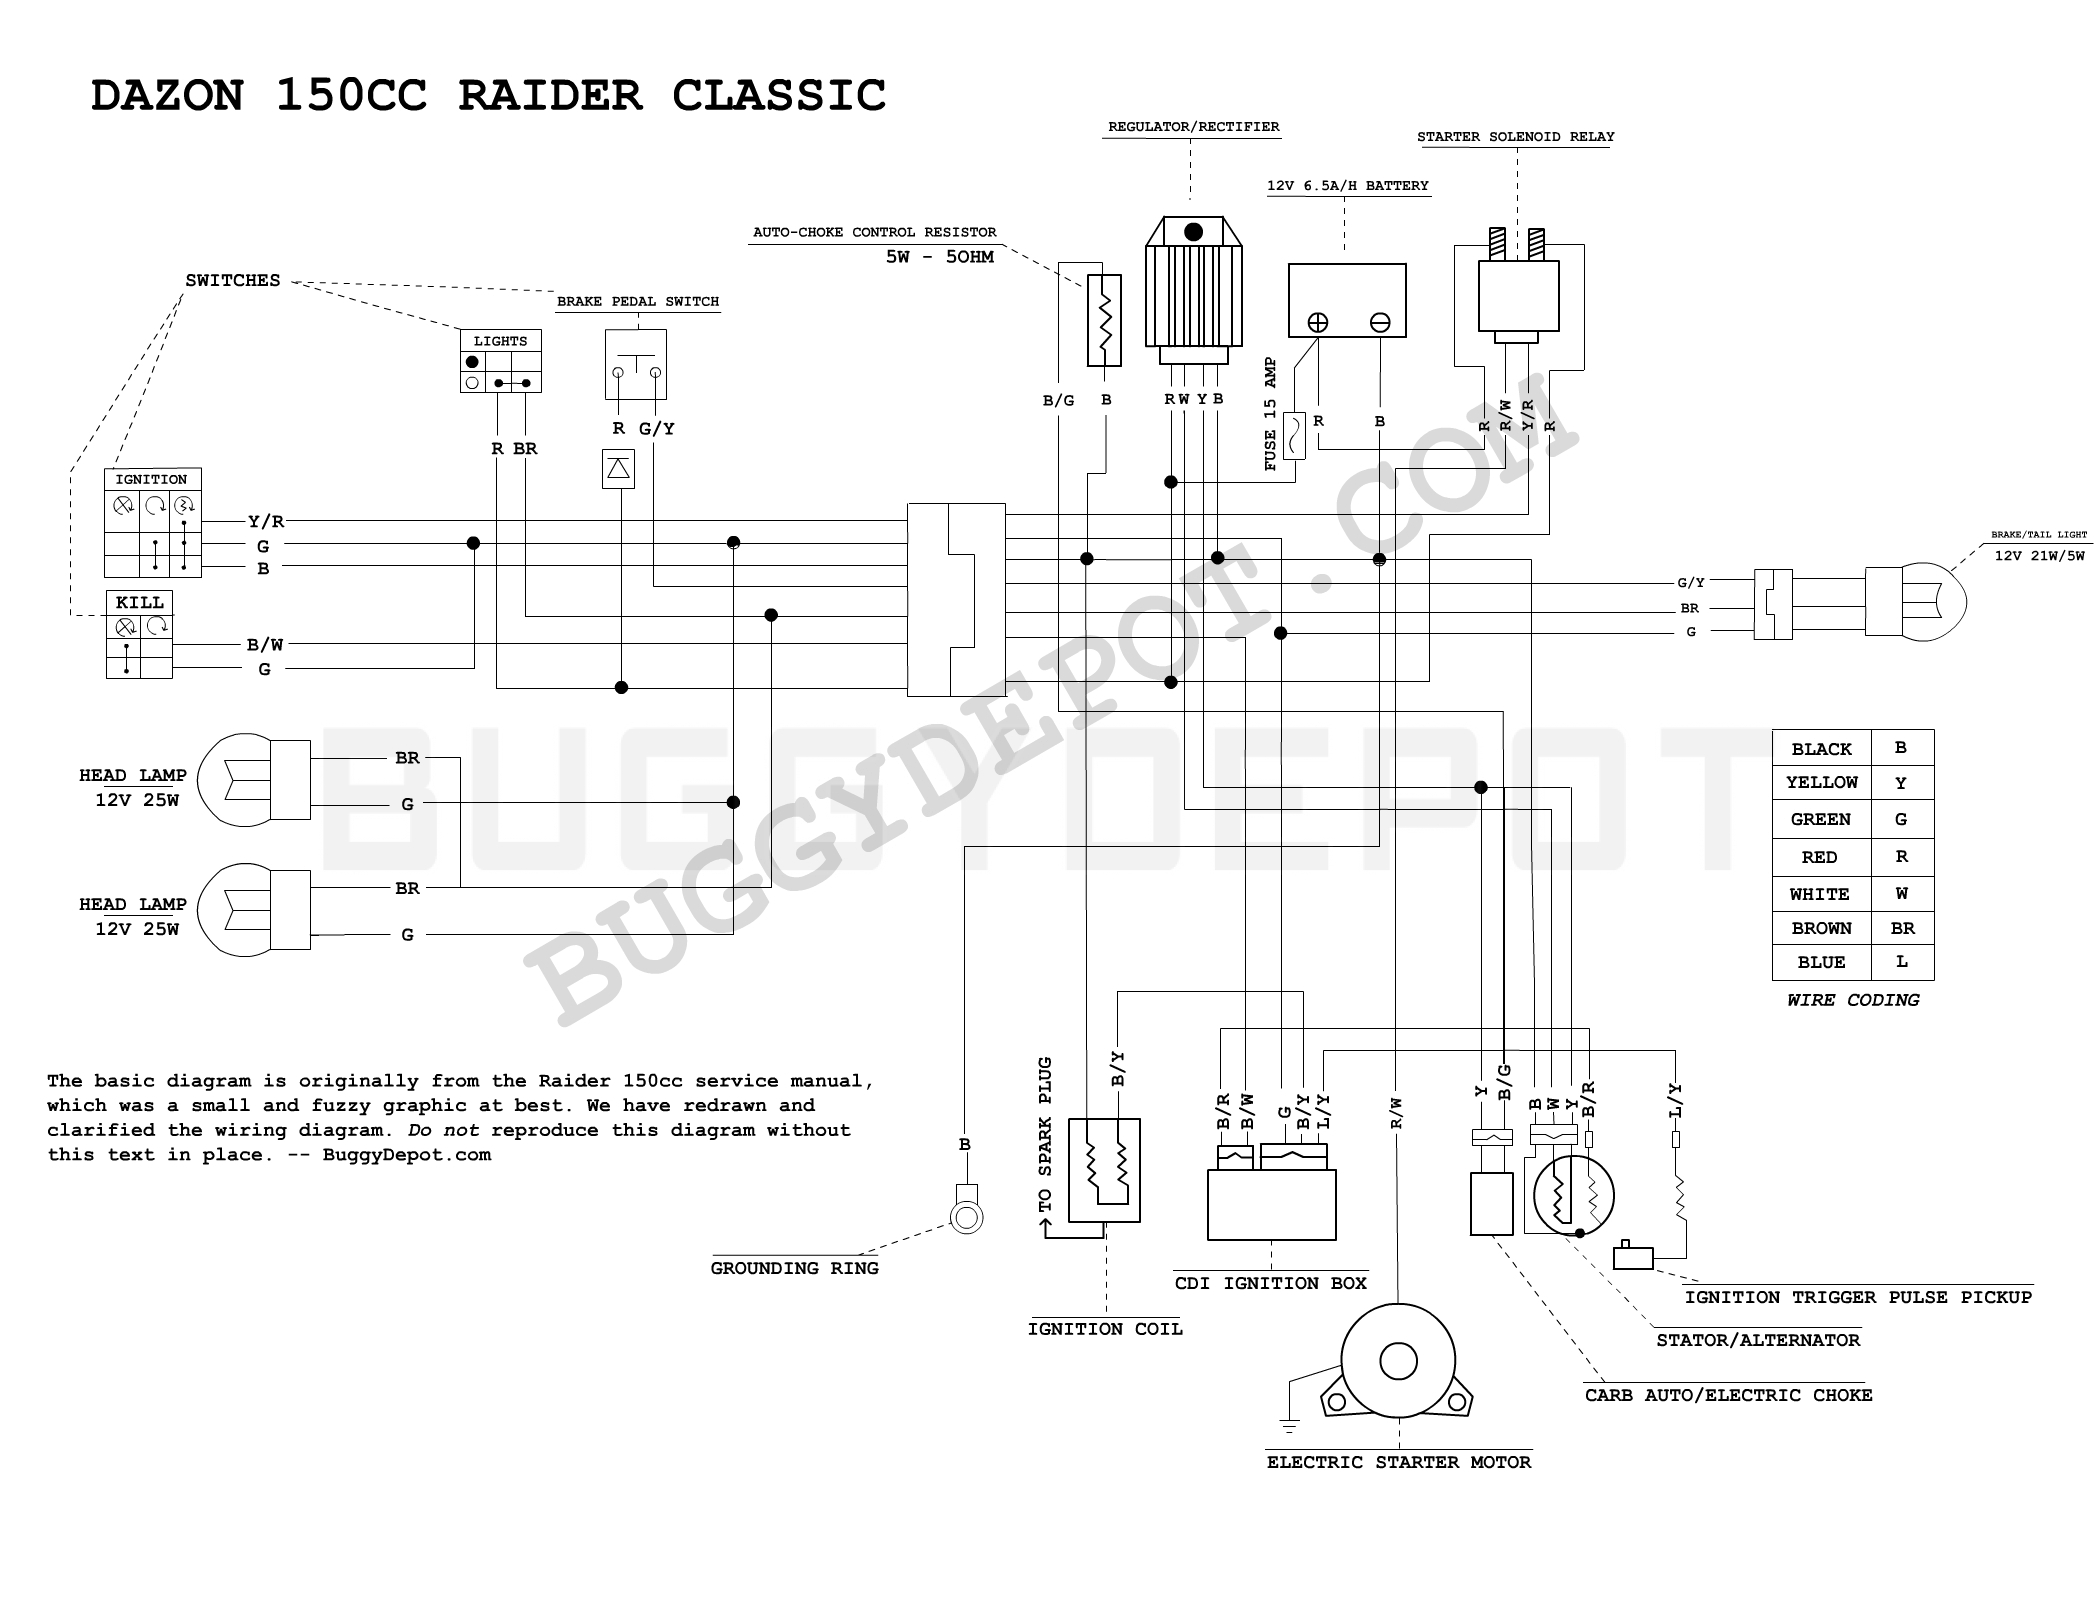 article_33_1278205207 dazon raider classic wiring diagram buggy depot technical center Light Switch Wiring Diagram at creativeand.co